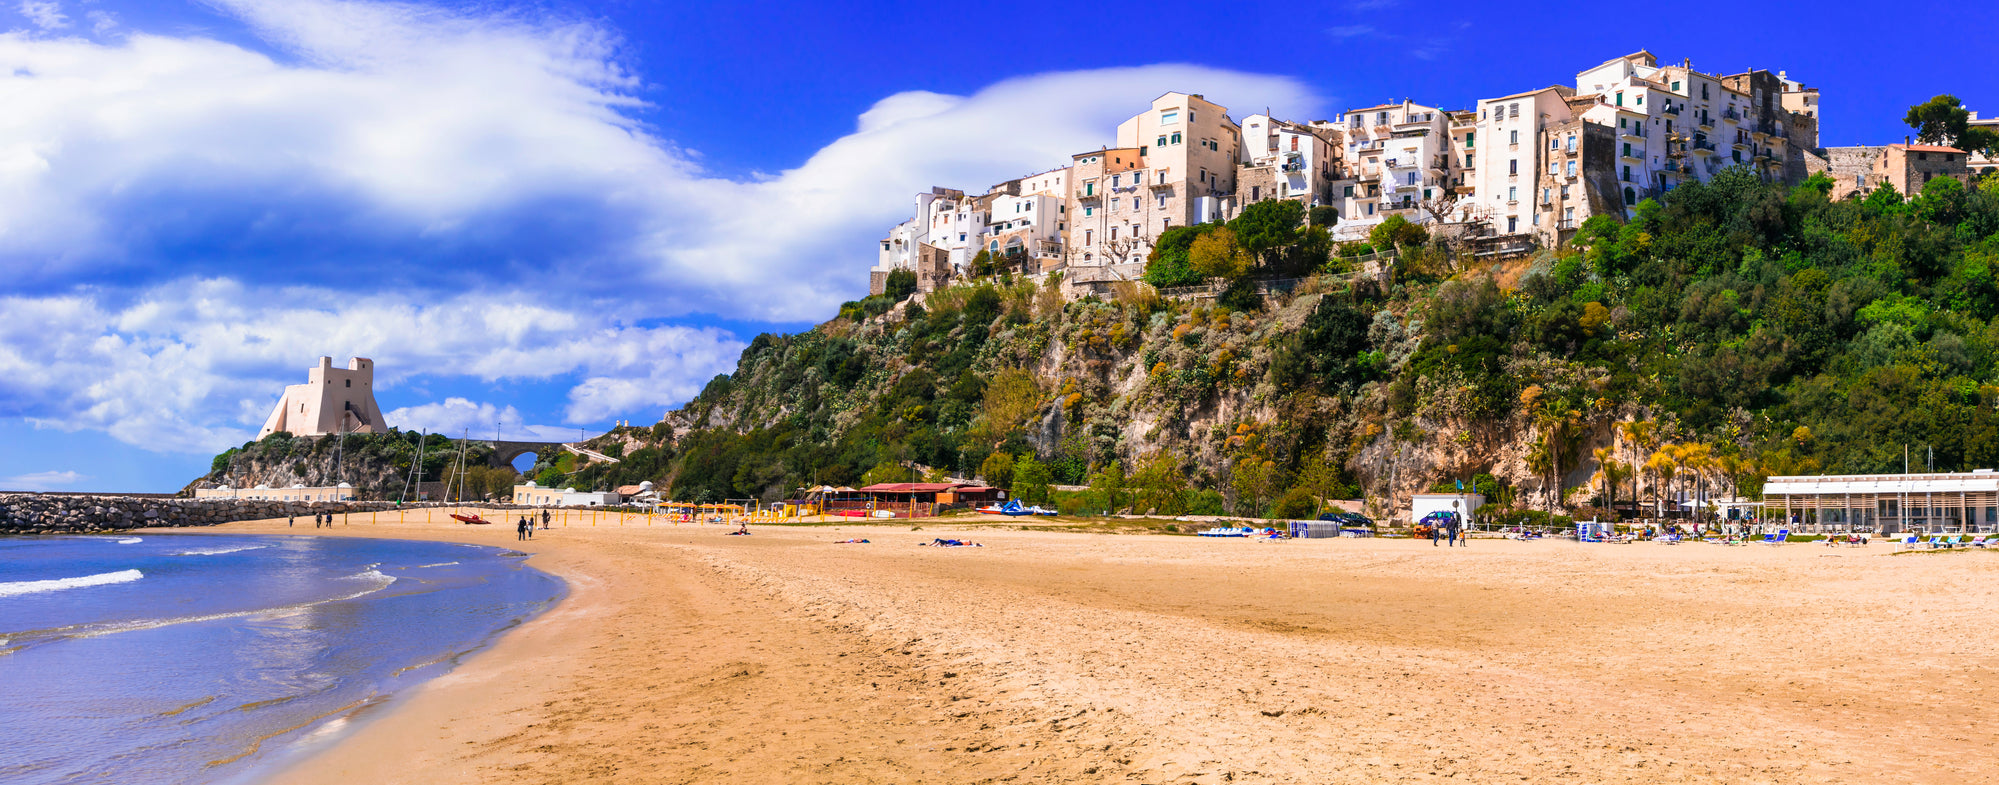 Best travel tips for UK and European beaches